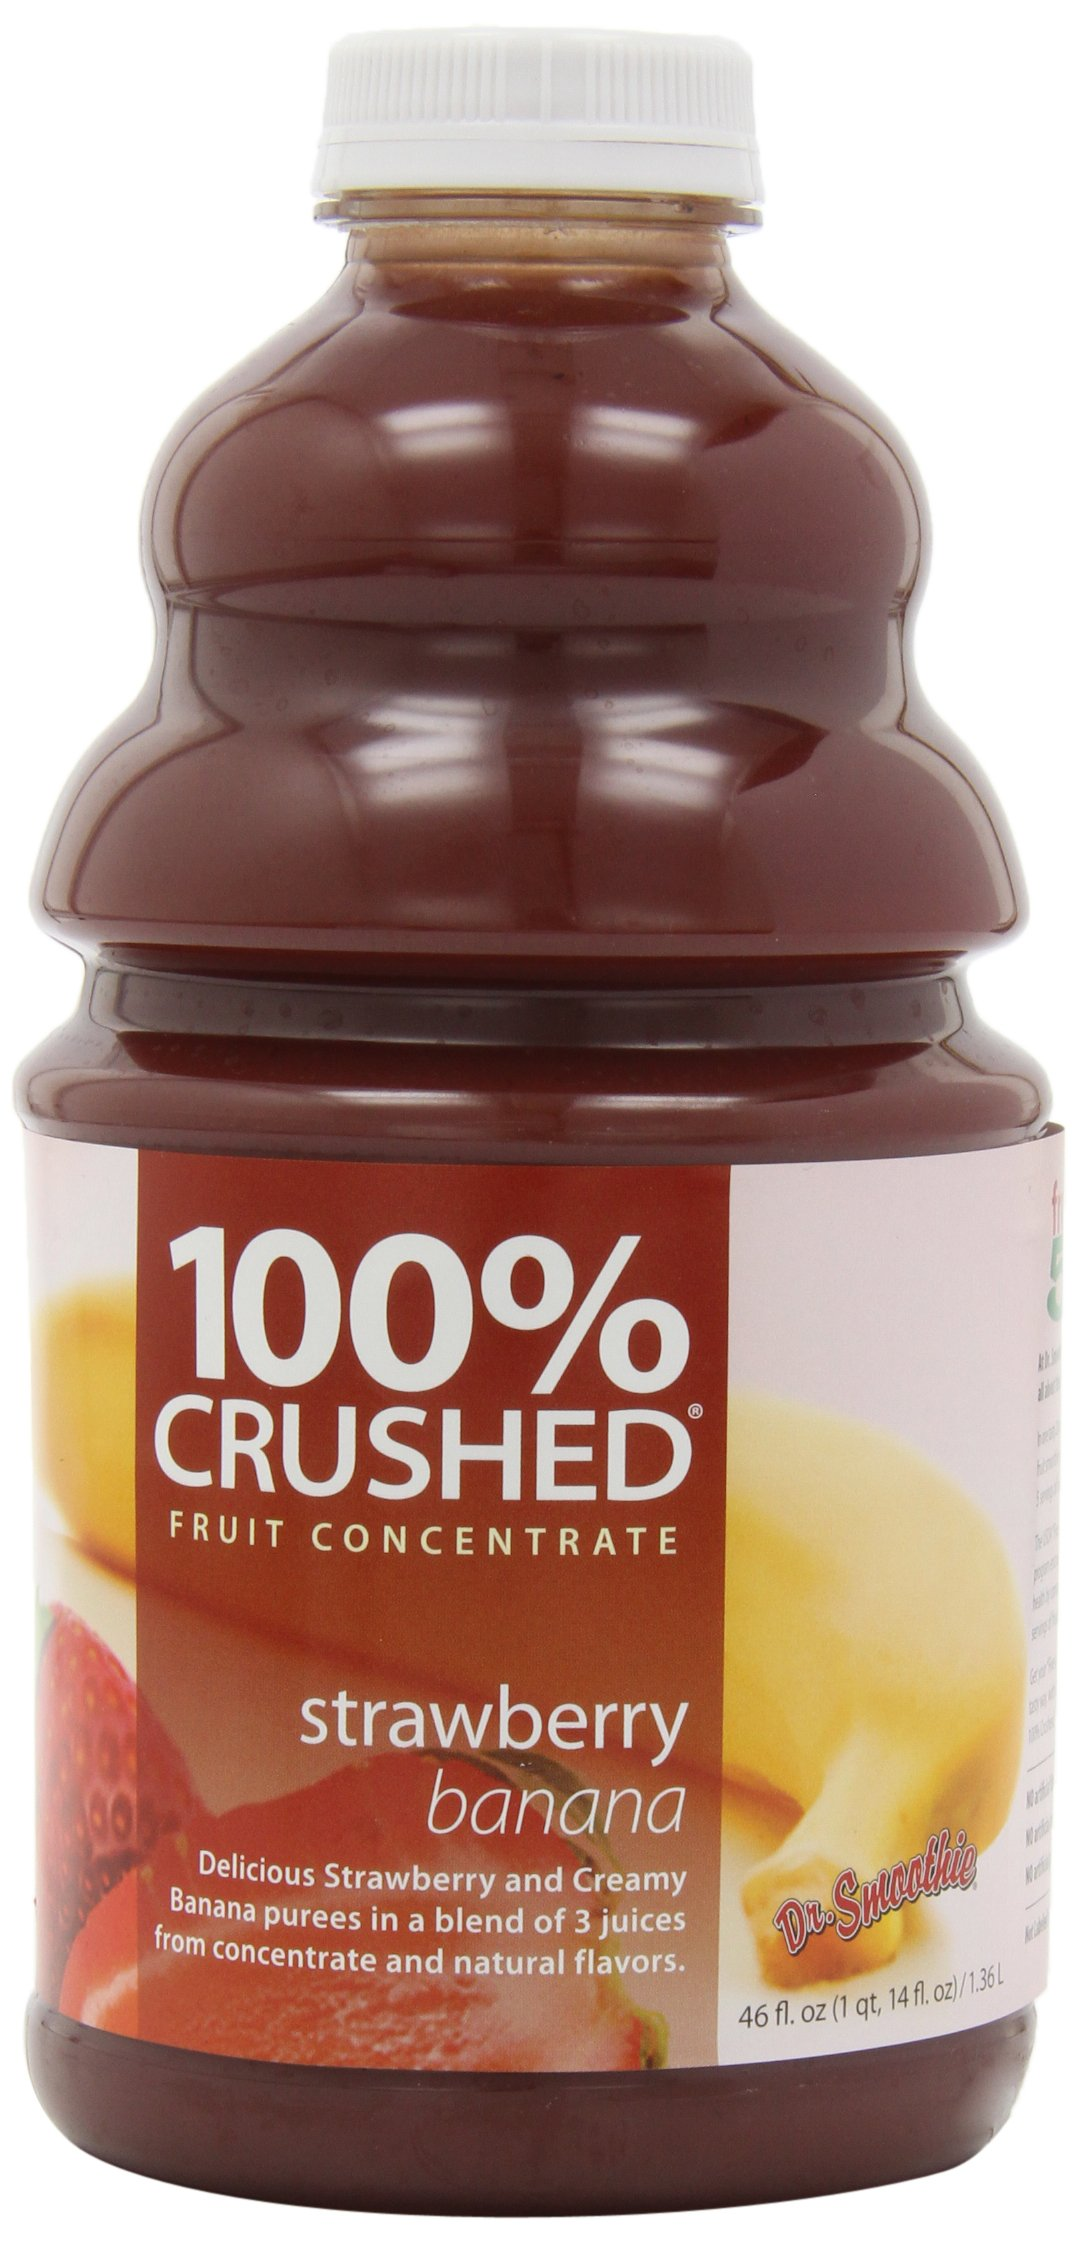 Dr. Smoothie 100% Crushed Fruit Smoothie, Strawberry Banana, 46-Ounce  Bottles